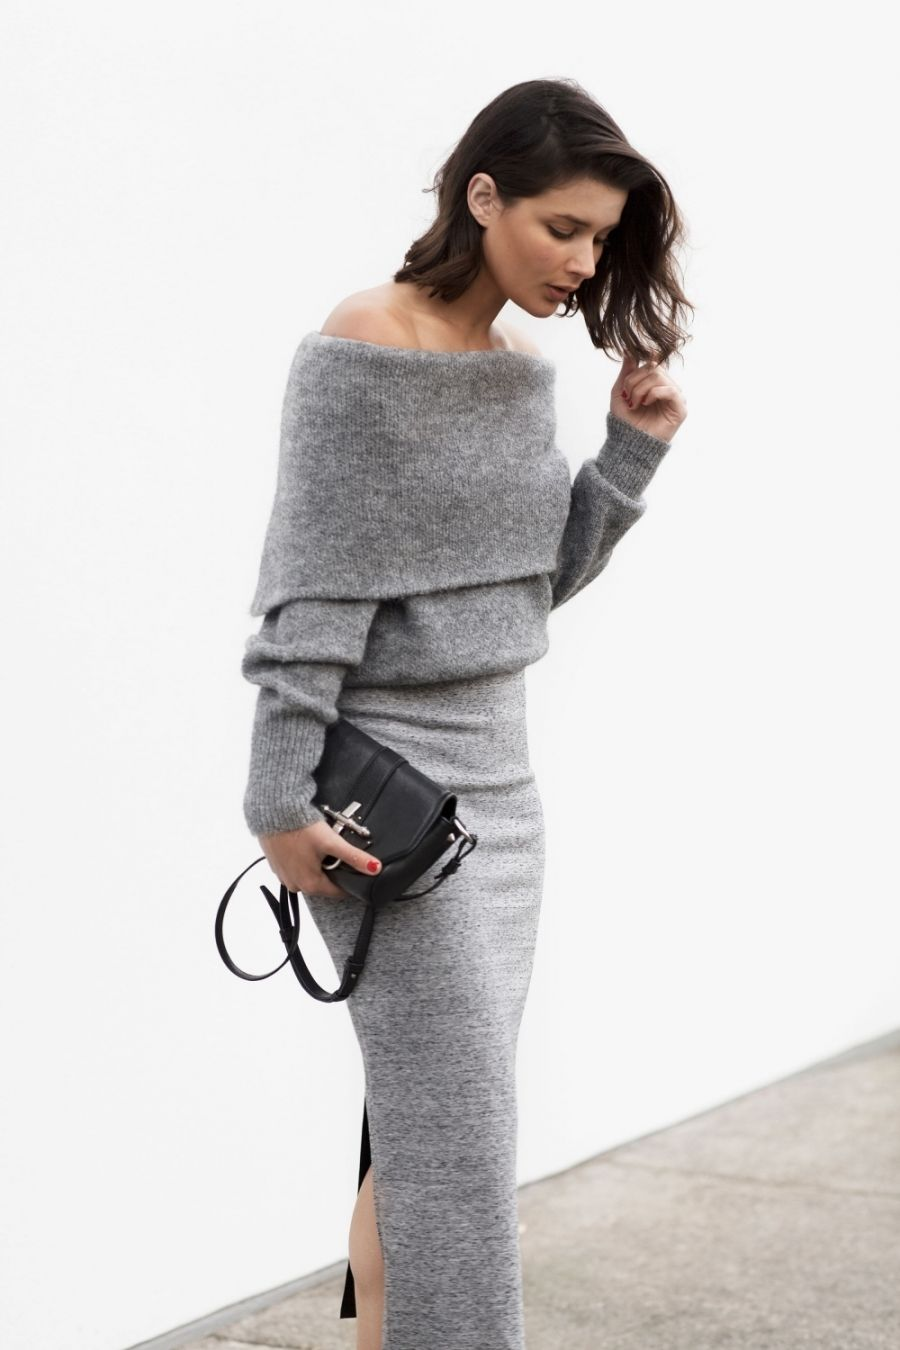 Grey Knit top & skirt. | Chic Style Type | Pinterest | Minimal chic ...